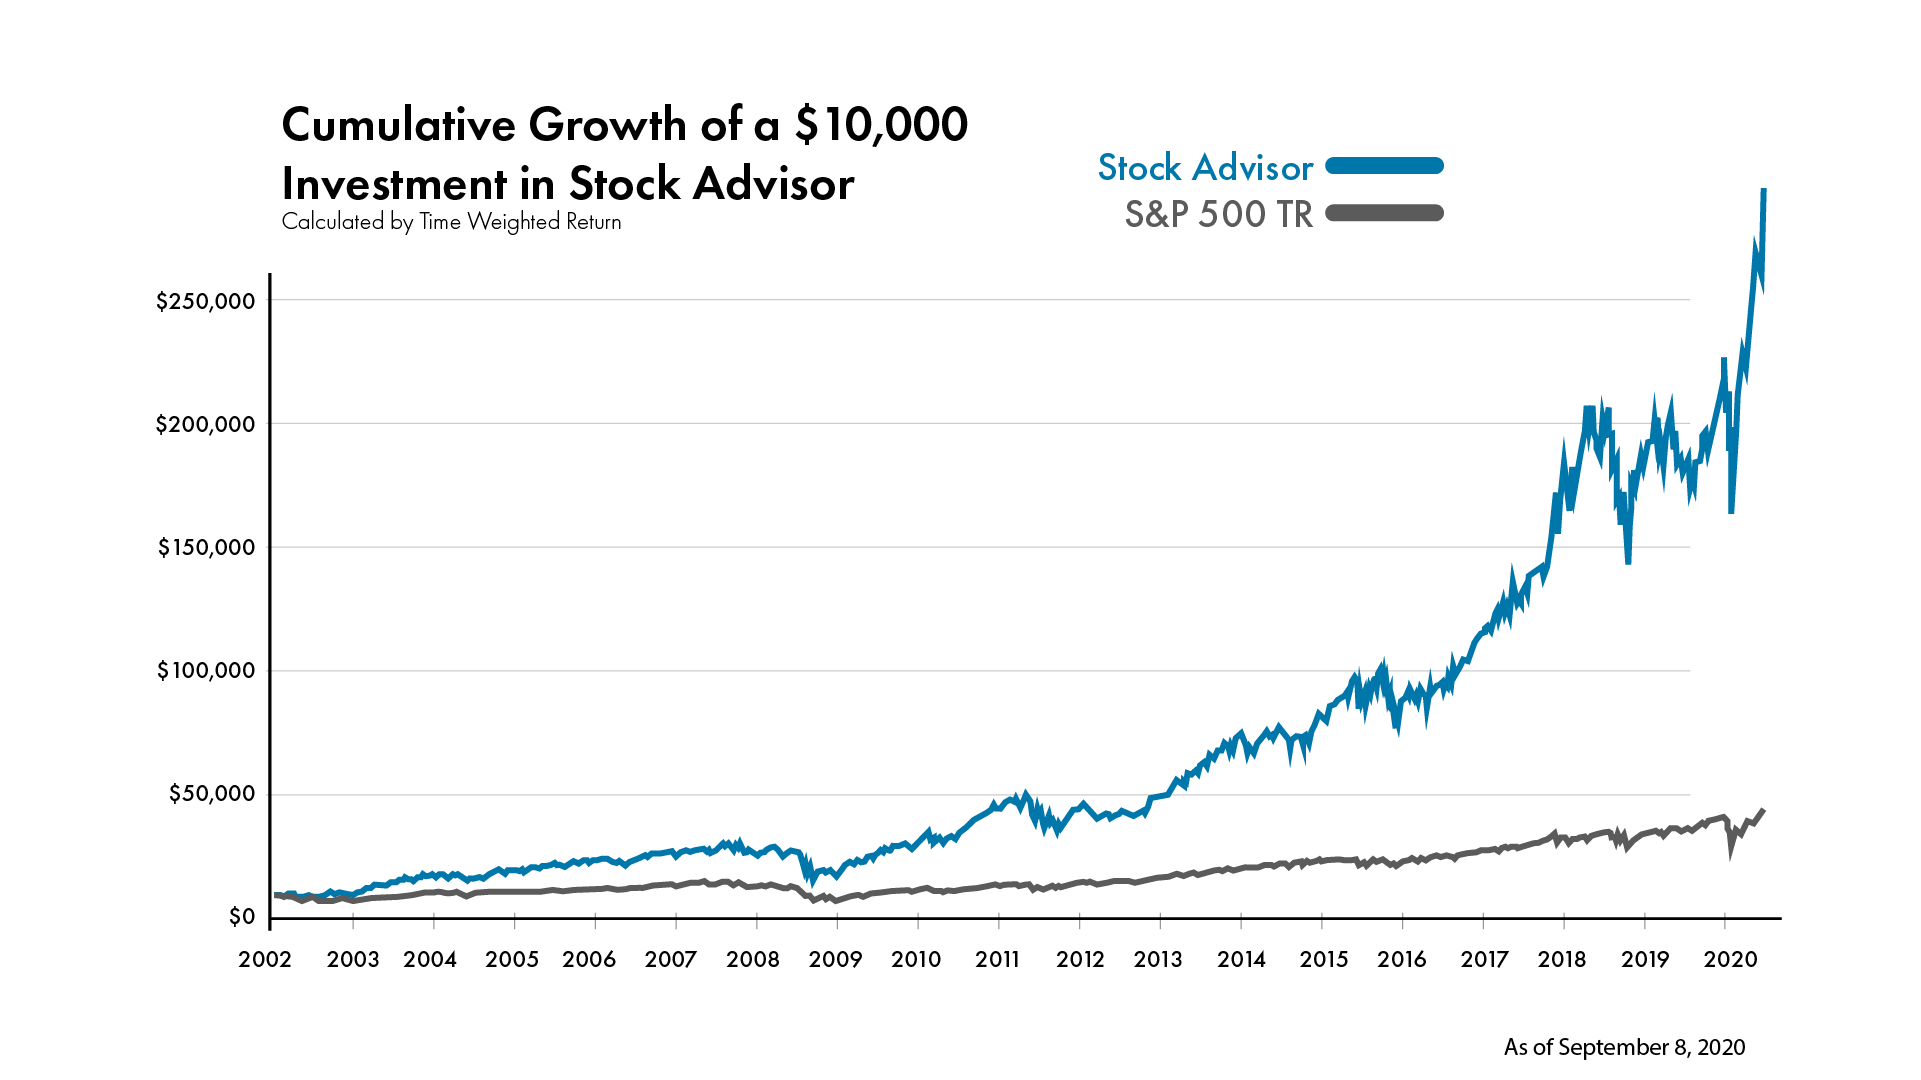 Cumulative Growth of a $10,000 Investment in Stock Advisor